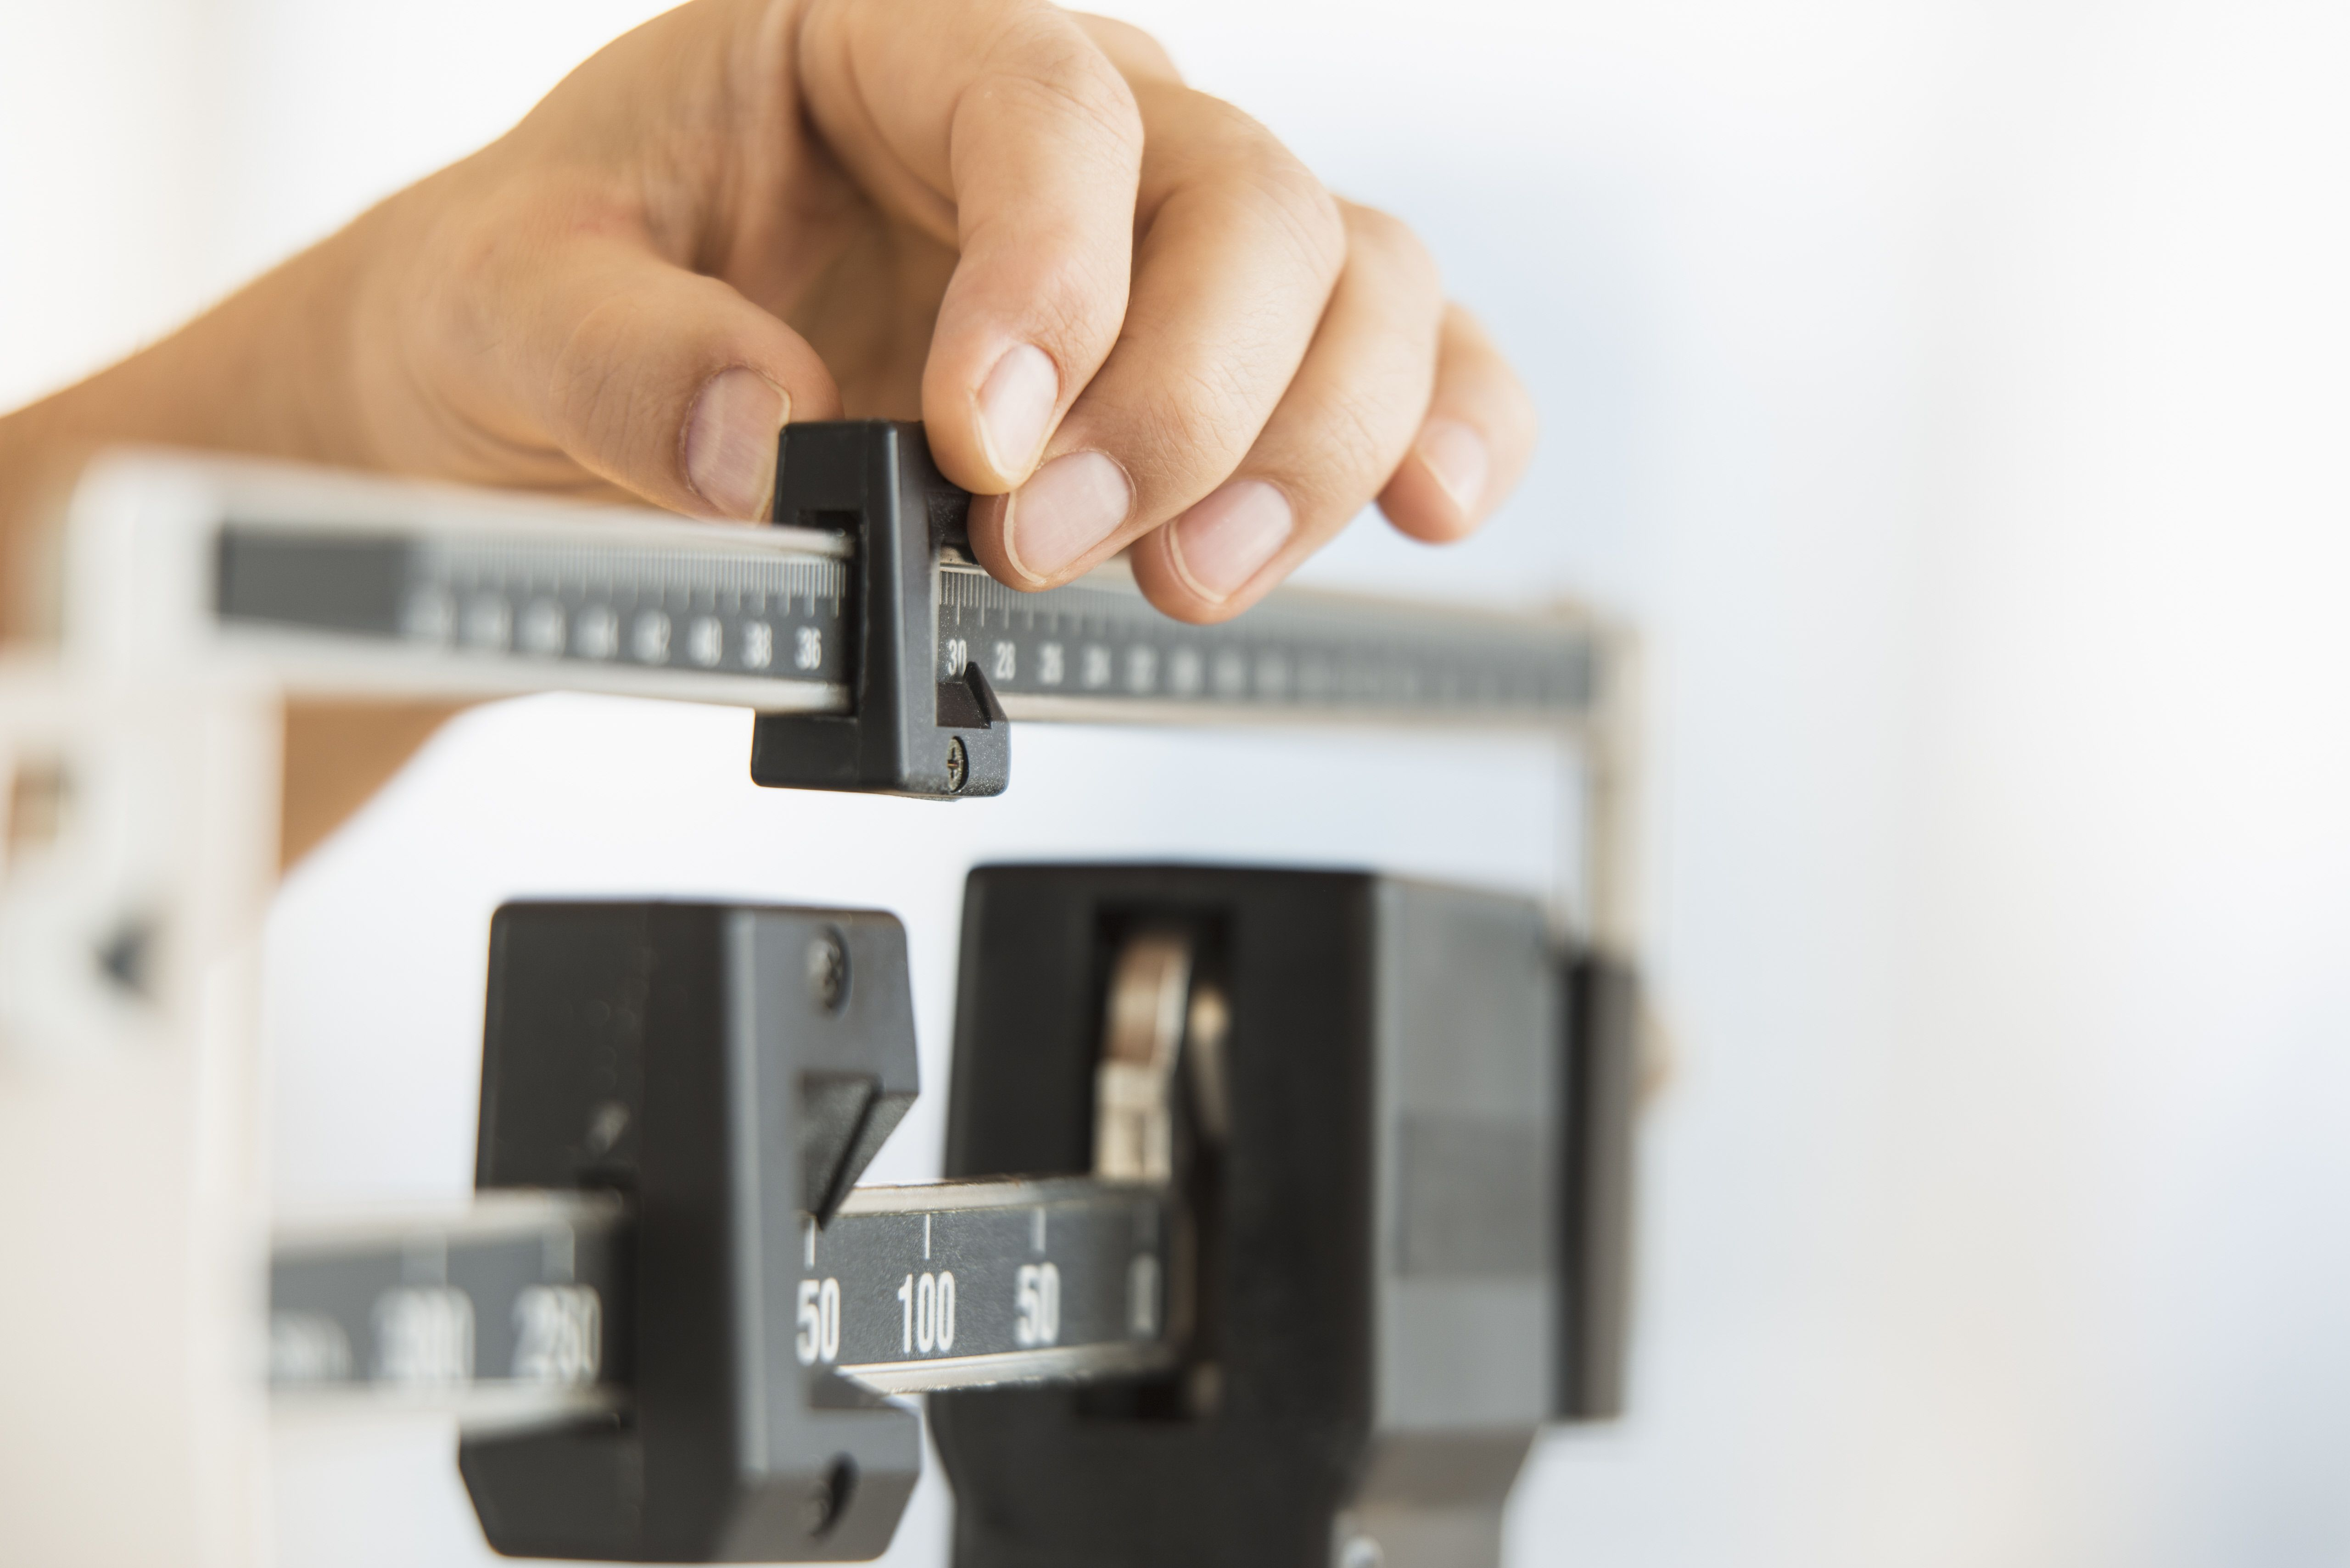 Lose weight bloomington normal